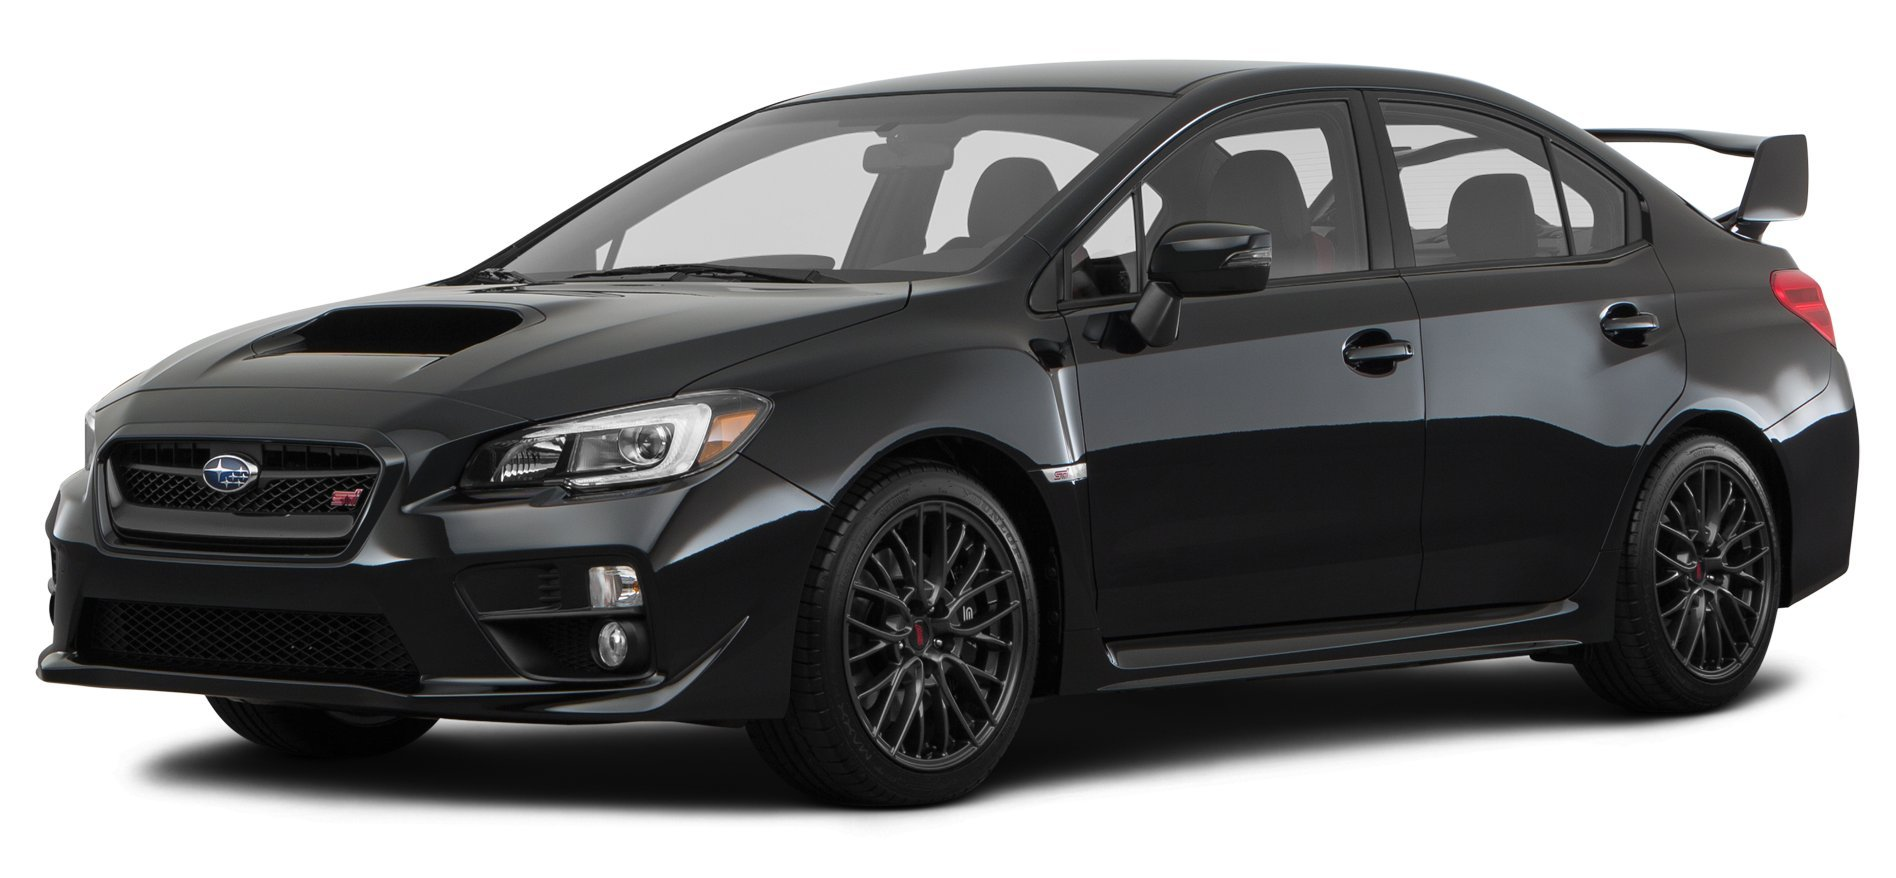 2017 subaru wrx sti reviews images and specs vehicles. Black Bedroom Furniture Sets. Home Design Ideas